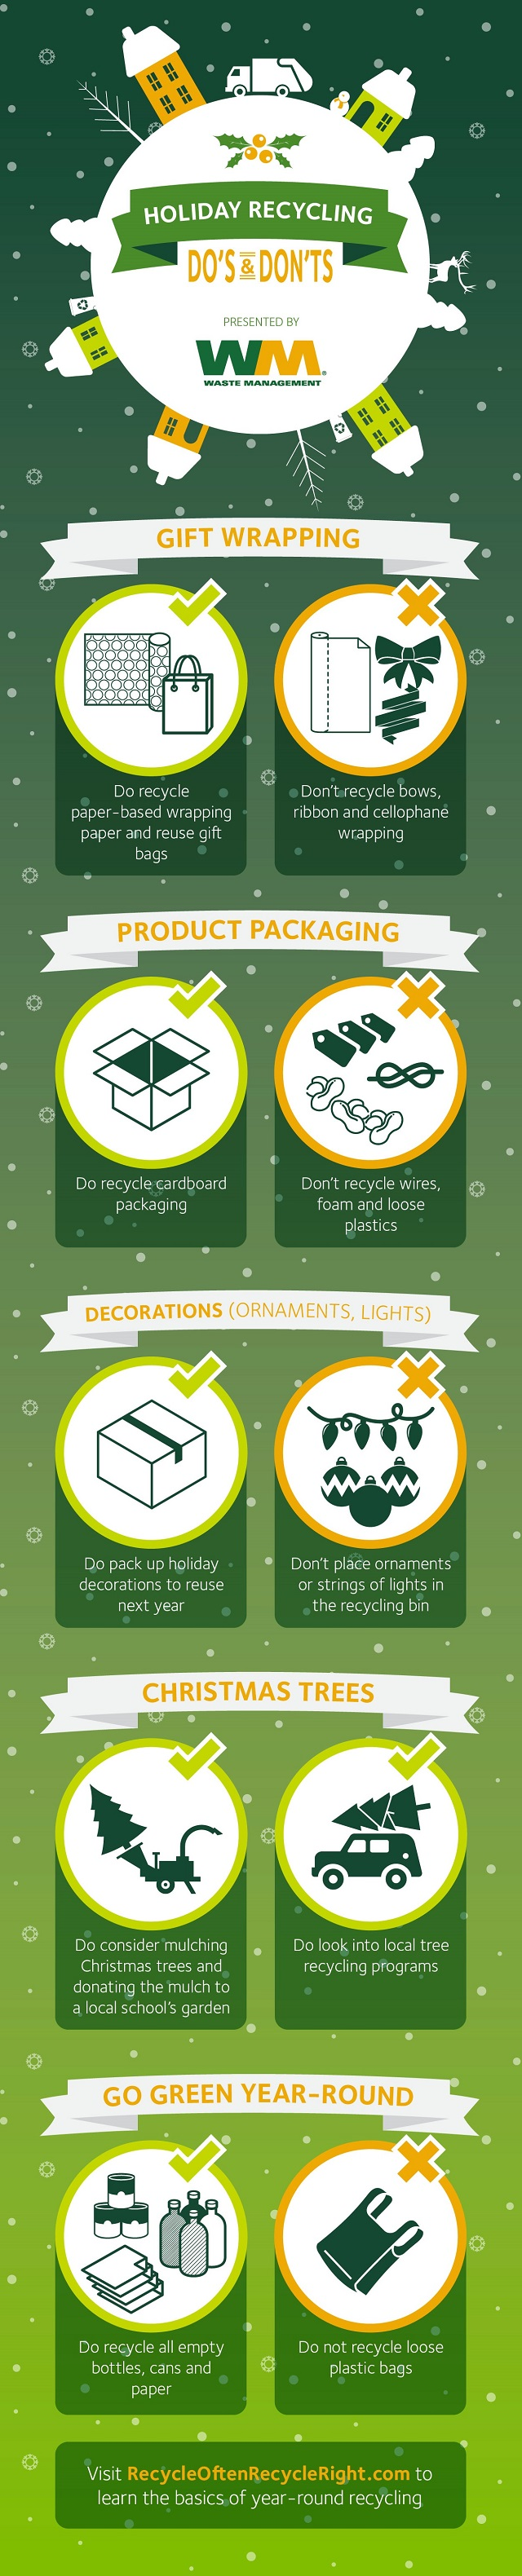 Holiday Waste: What to Recycle, and What to Upcycle